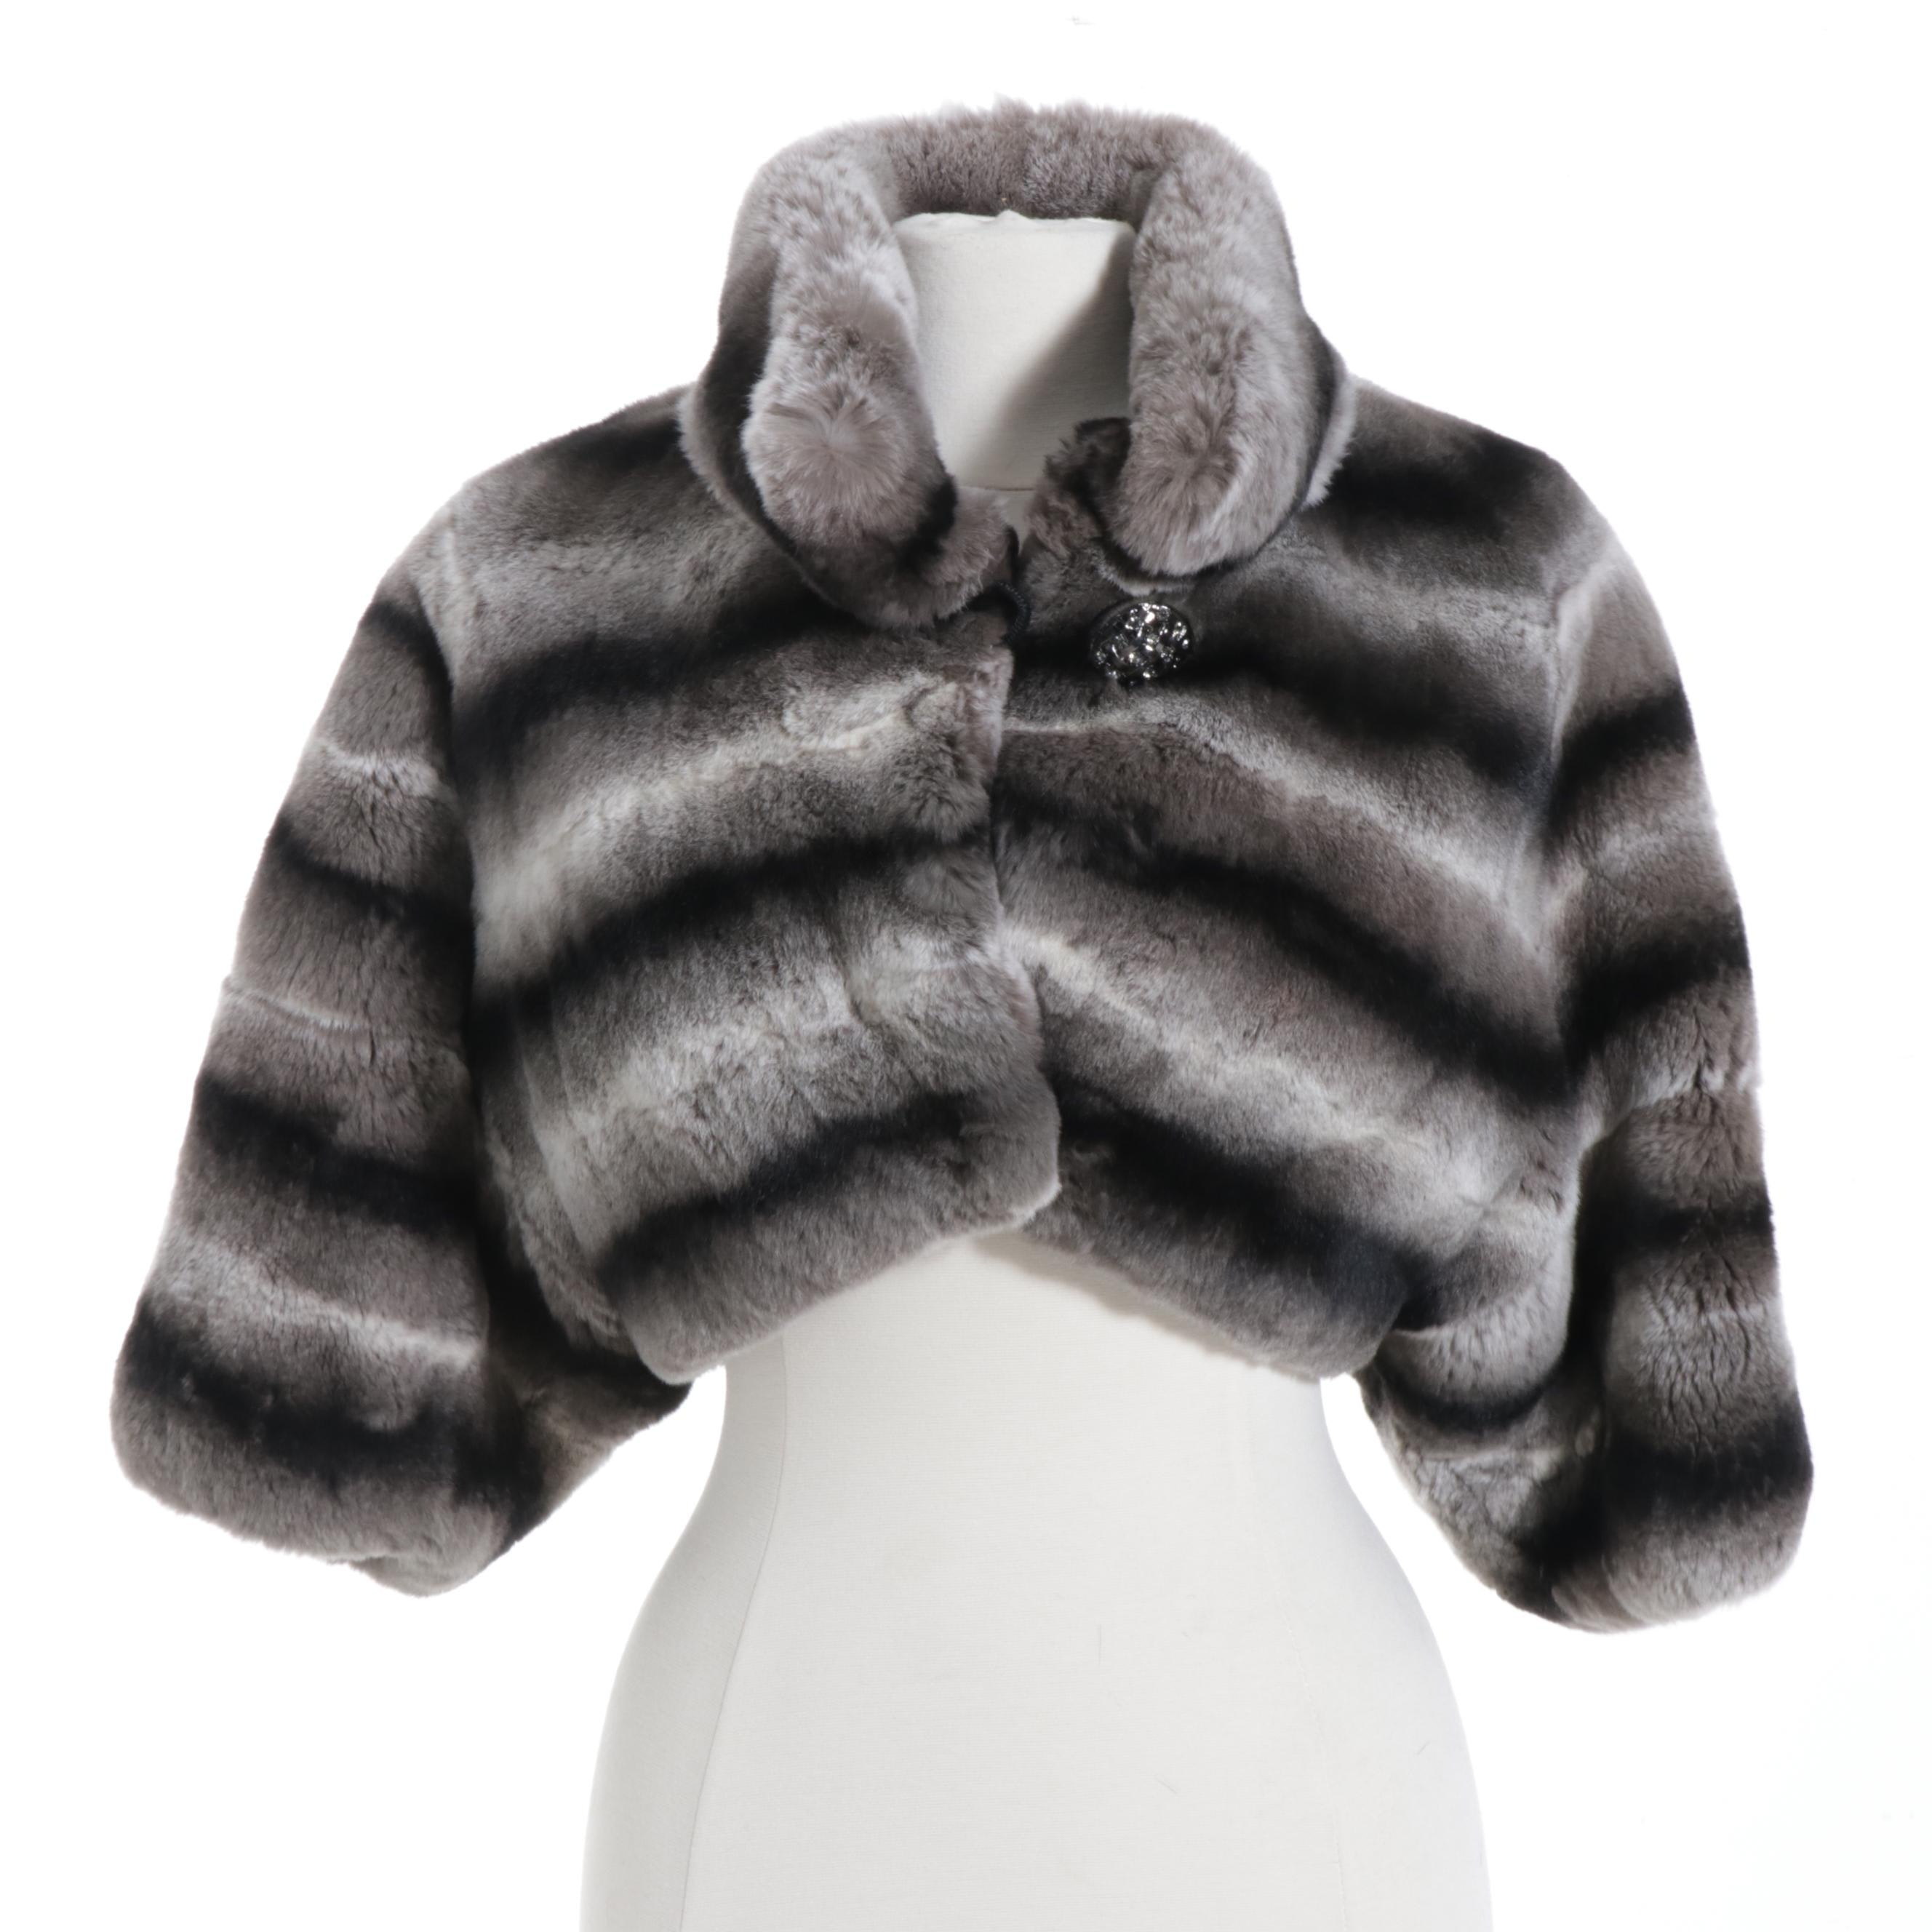 Chinchilla Dyed Sheared Rex Rabbit Fur Shrug Jacket